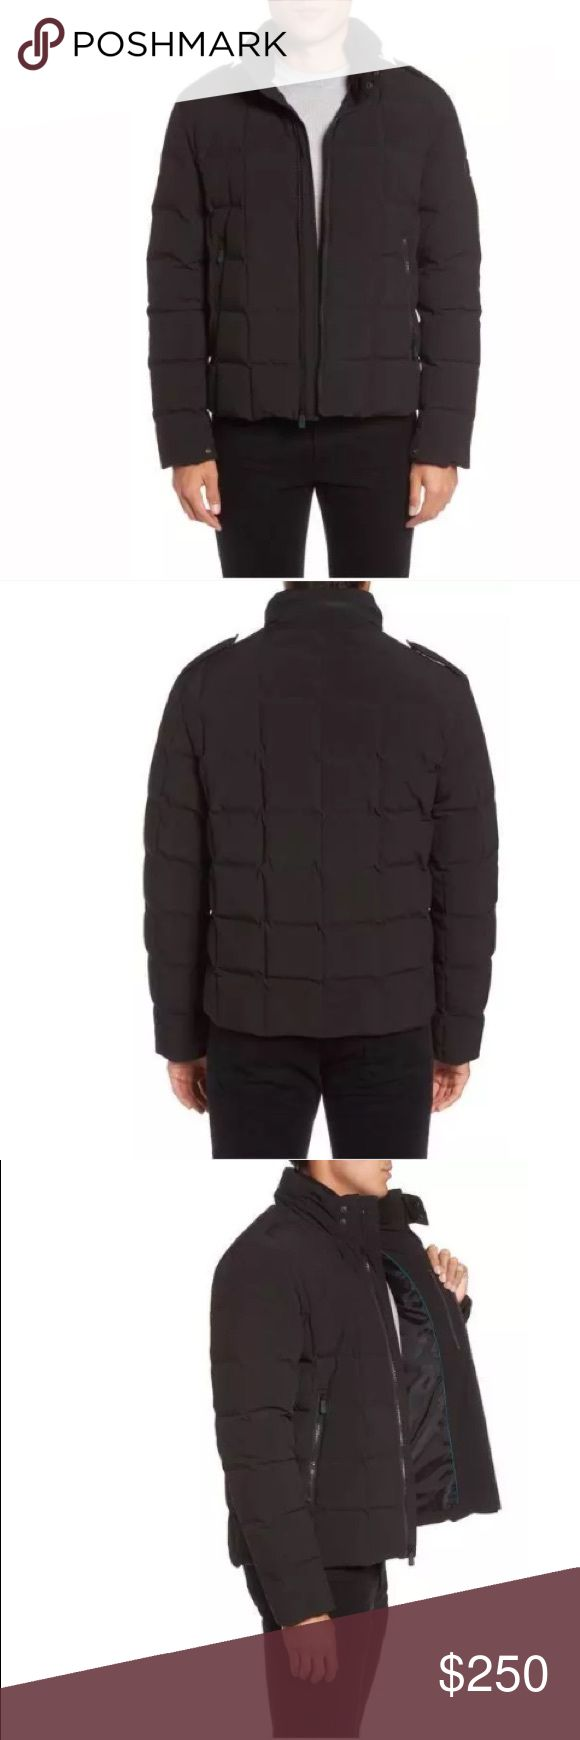 """$325 TUMI DOWN FILLED BOX QUILTED JACKET NEW WITH TAGS $325  TUMI DOWN FILLED BOX QUILTED JACKET MENS SIZE XL   Size Info True to size. Considered a Trim fit; fitted through the chest, armholes and sides.  Cozy, box-quilted synthetic fill warms a water-resistant jacket equipped with a stowaway hood and inset ribbed collar for complete comfort and protection from top to bottom. 26 1/2"""" length (size Medium) Front zip closure Front zip pockets; interior zip pockets Lined 92% polyester, 8%…"""